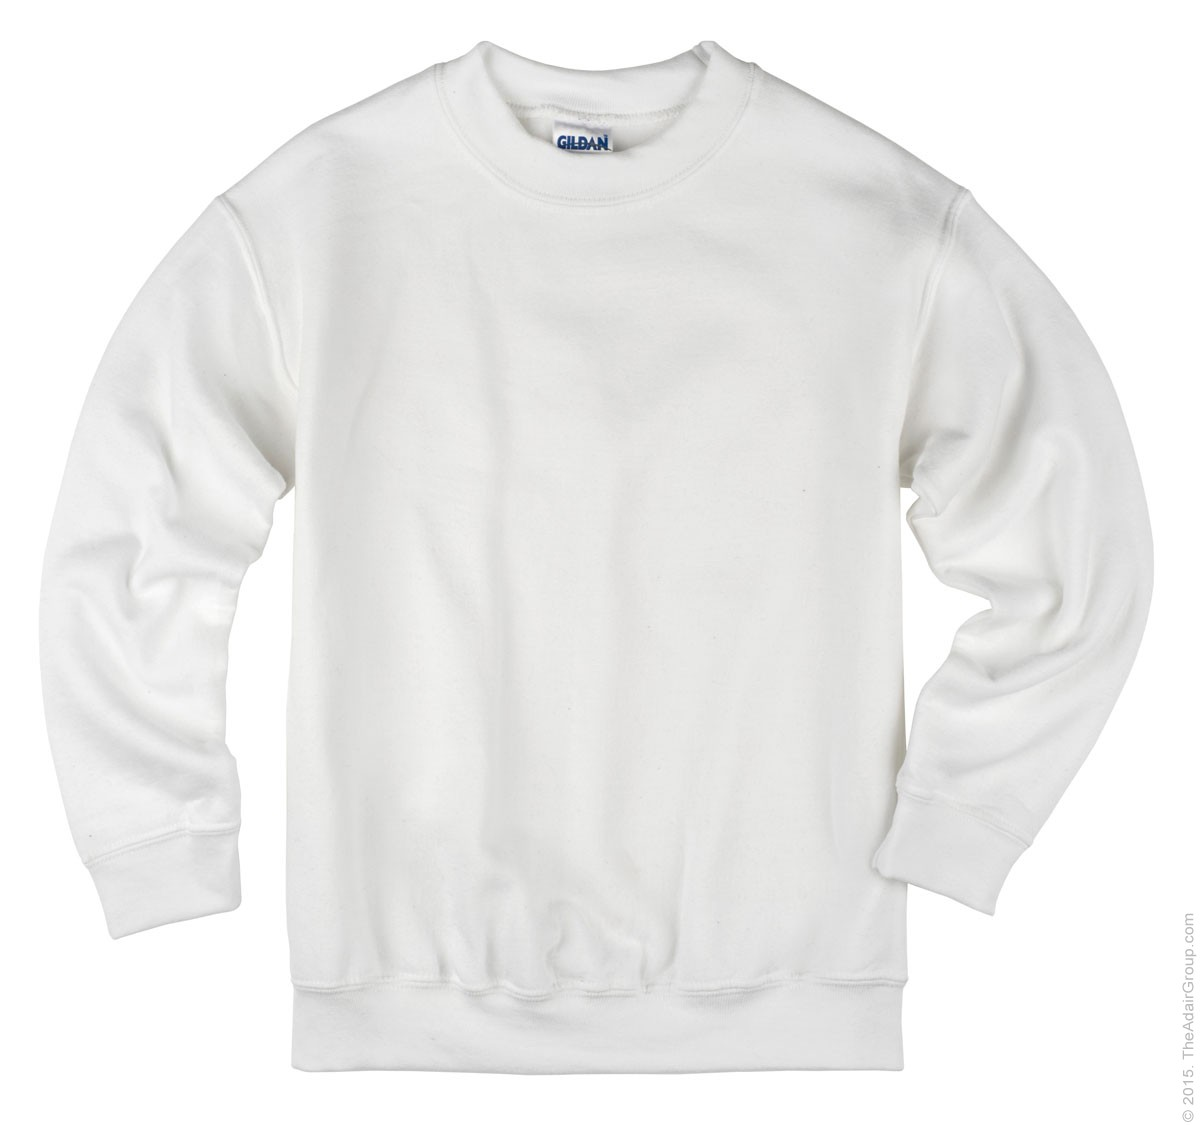 Kids Sweatshirts at Wholesale Bulk Pricing